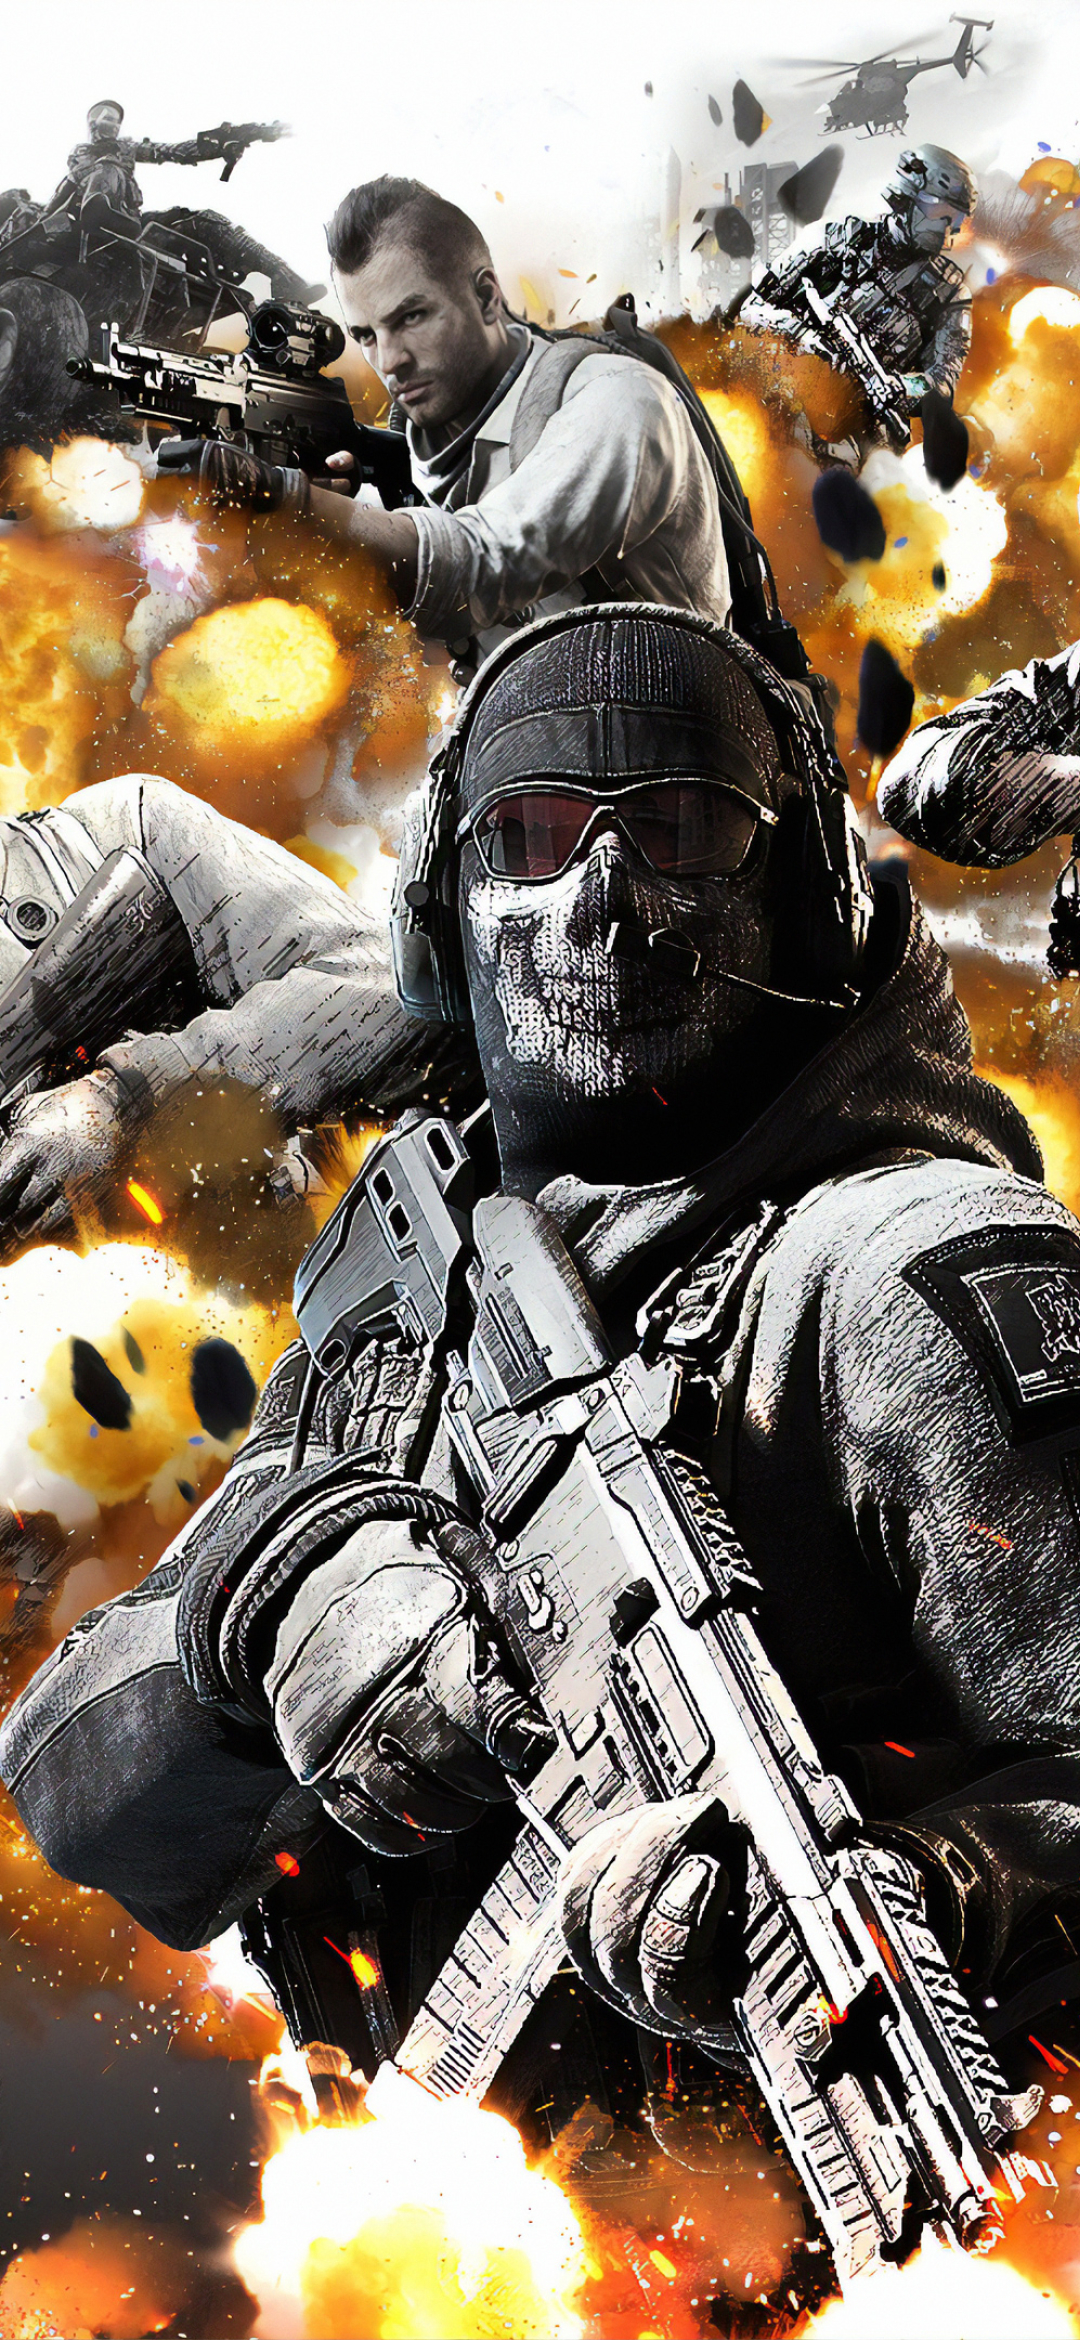 1080x2340 Call of Duty Mobile Poster 1080x2340 Resolution ...